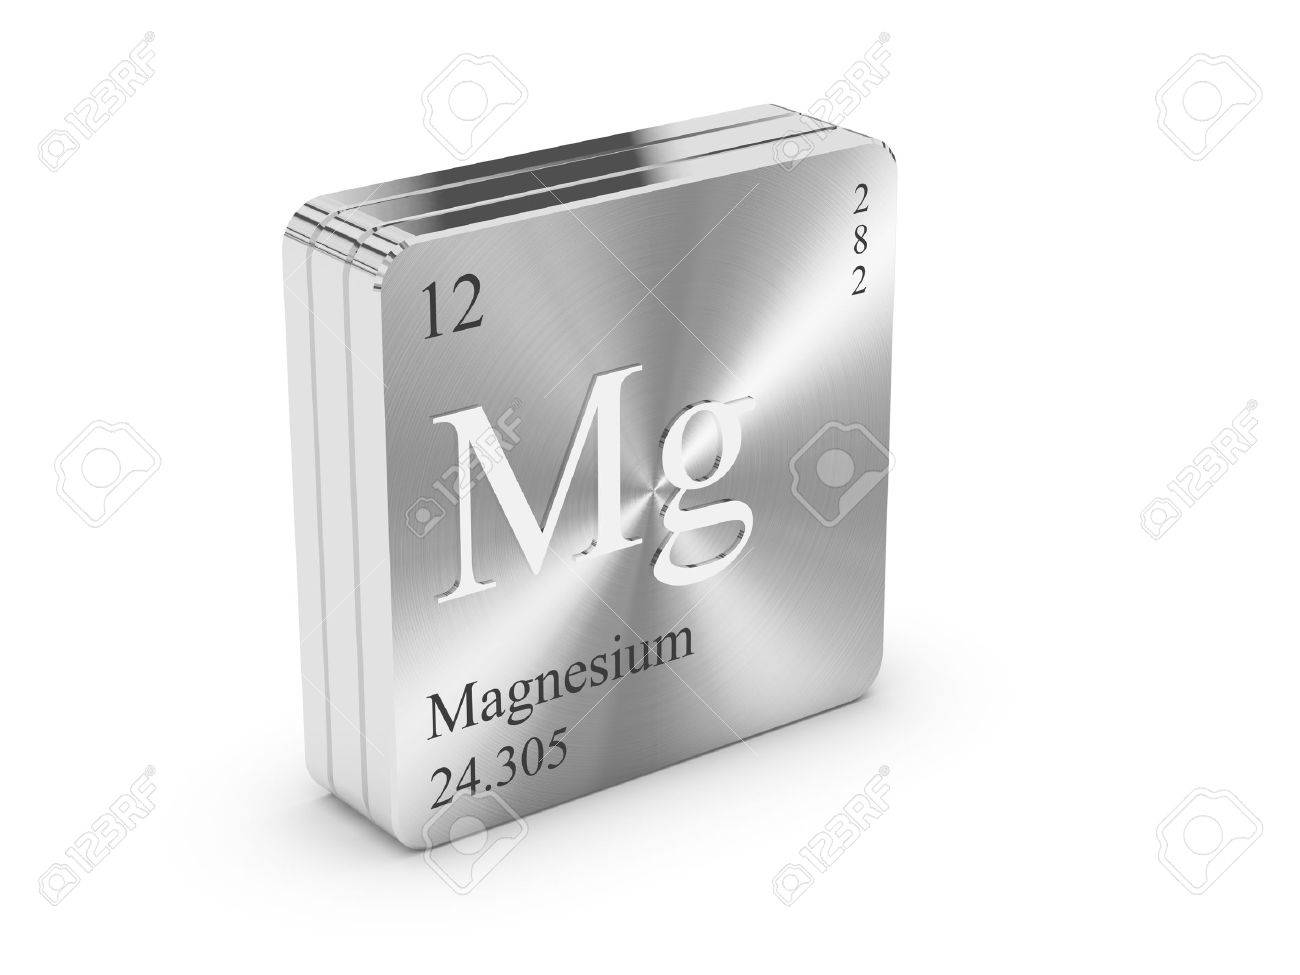 Magnesium element of the periodic table on metal steel block magnesium element of the periodic table on metal steel block stock photo 12083244 gamestrikefo Gallery